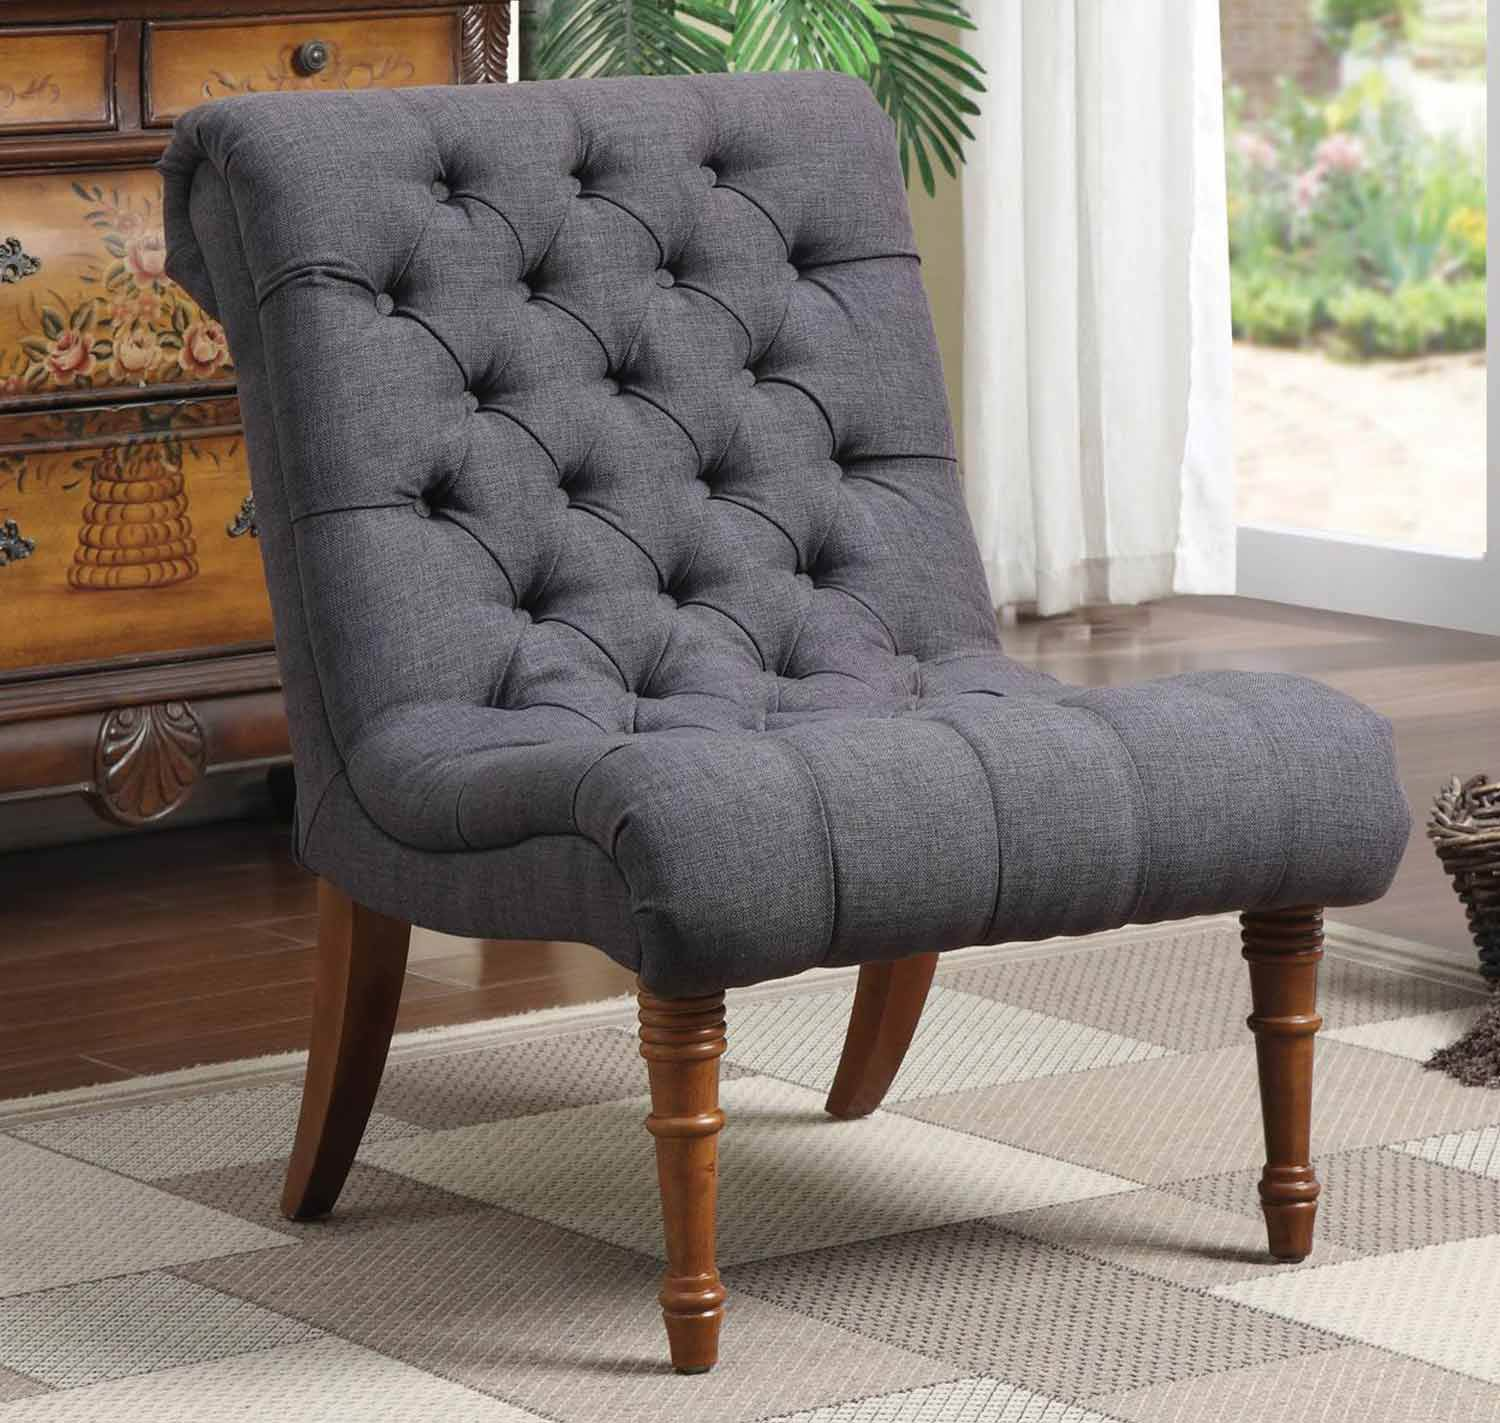 Coaster 902217 Accent Chair - Charcoal Grey